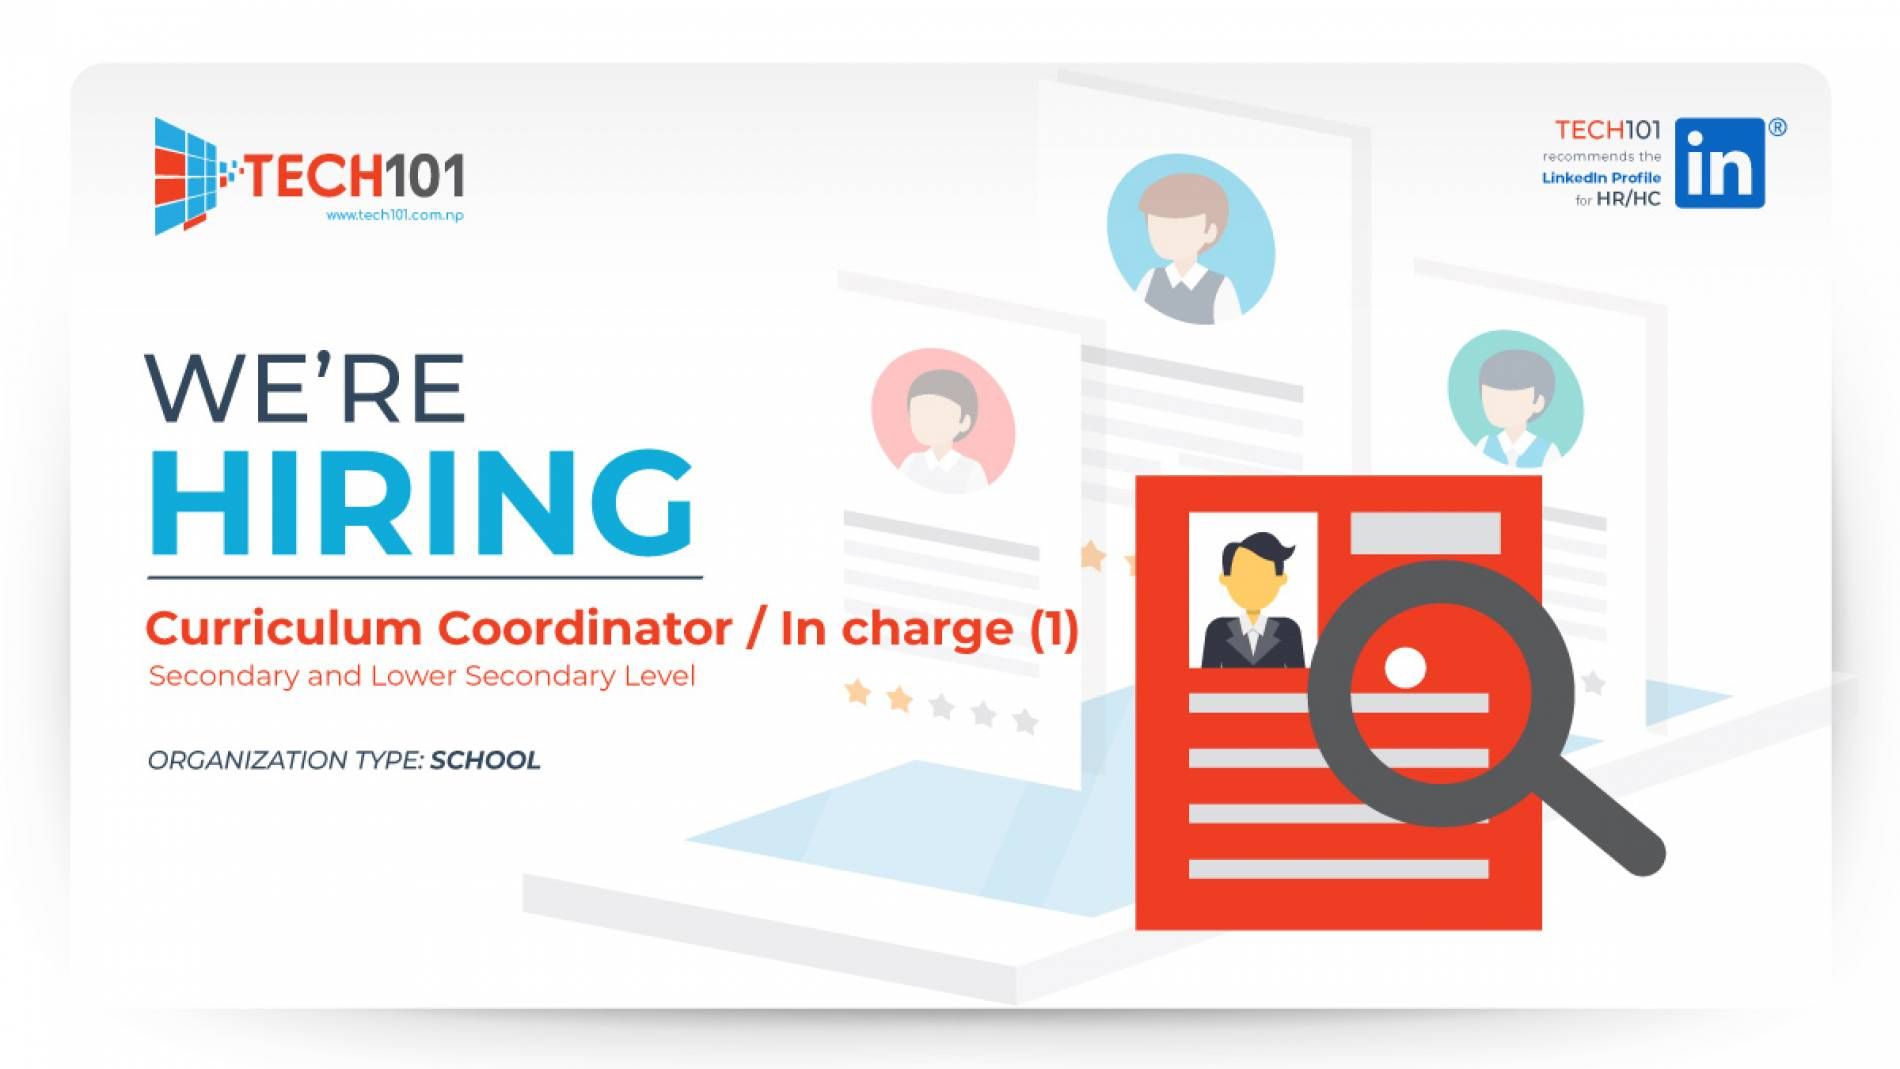 Curriculum Coordinator / In charge (1), Secondary and Lower Secondary Level